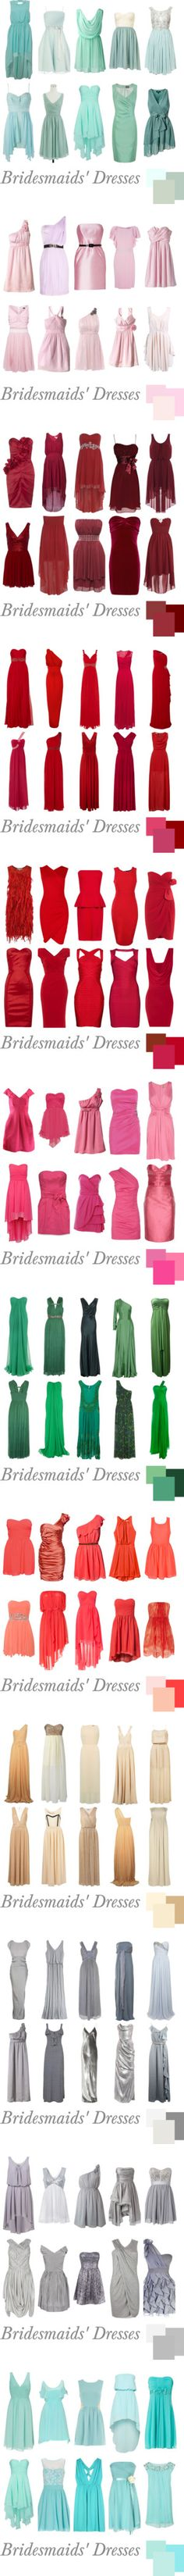 What an awesome chart for bridesmaids' dresses.